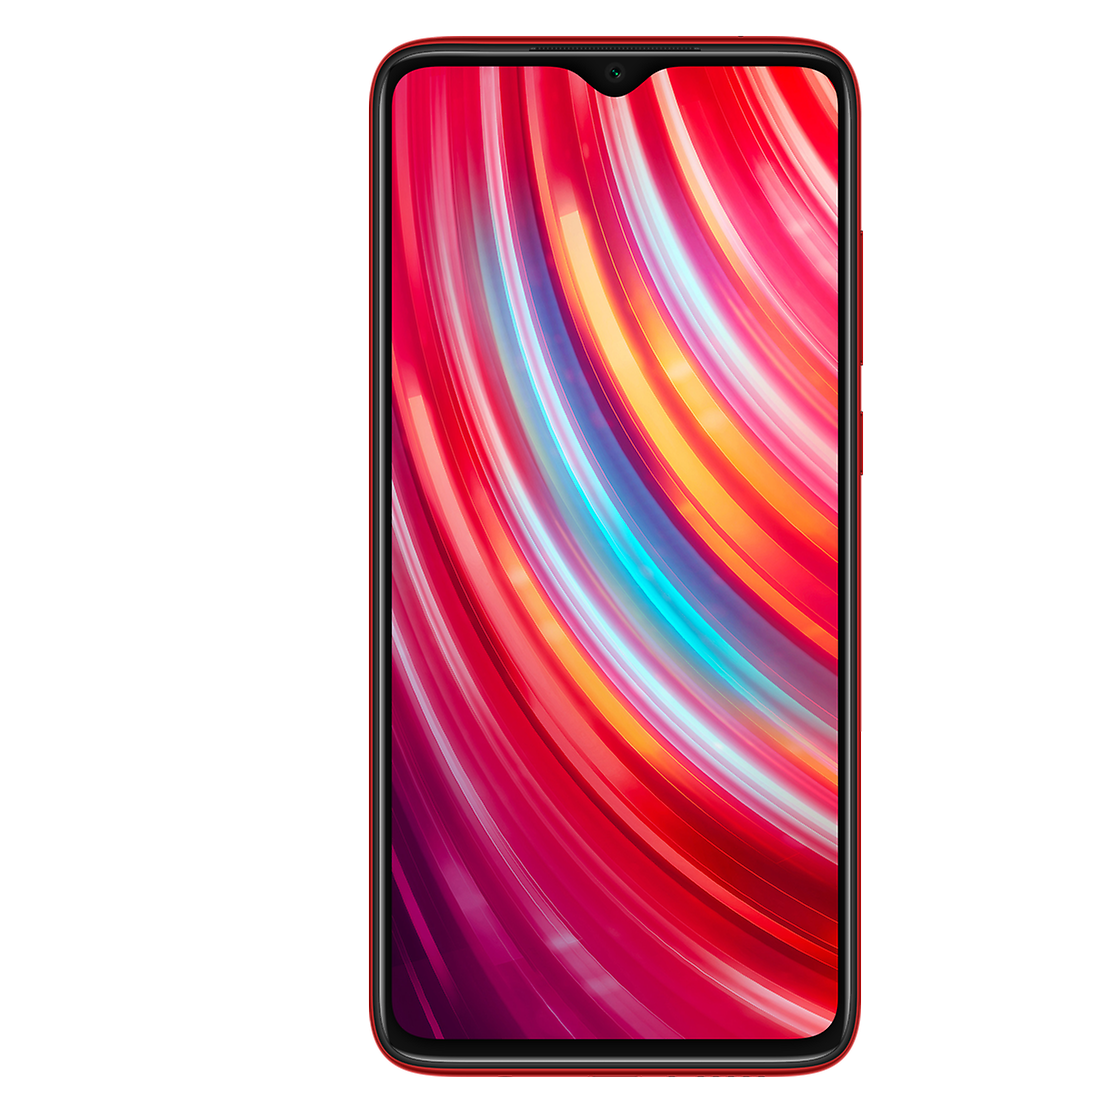 СМАРТФОН XIAOMI REDMI NOTE 8 PRO 128GB +SMART L+ 30.99 лв/м